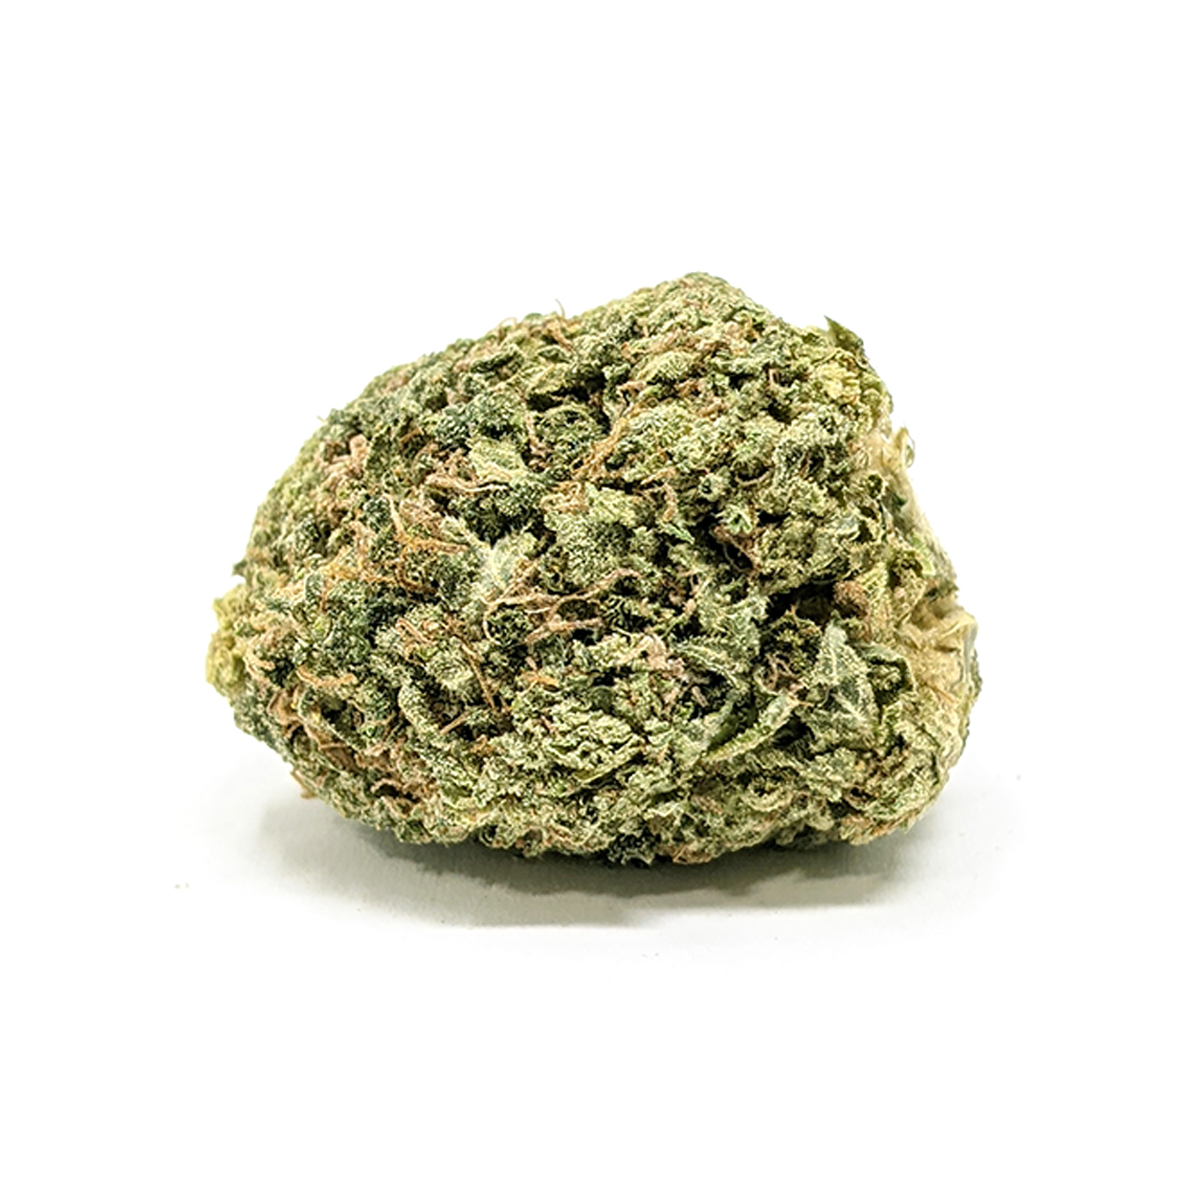 /Oz Special White Diesel by Buy My Bud - Image © 2021 Buy My Bud. All Rights Reserved.